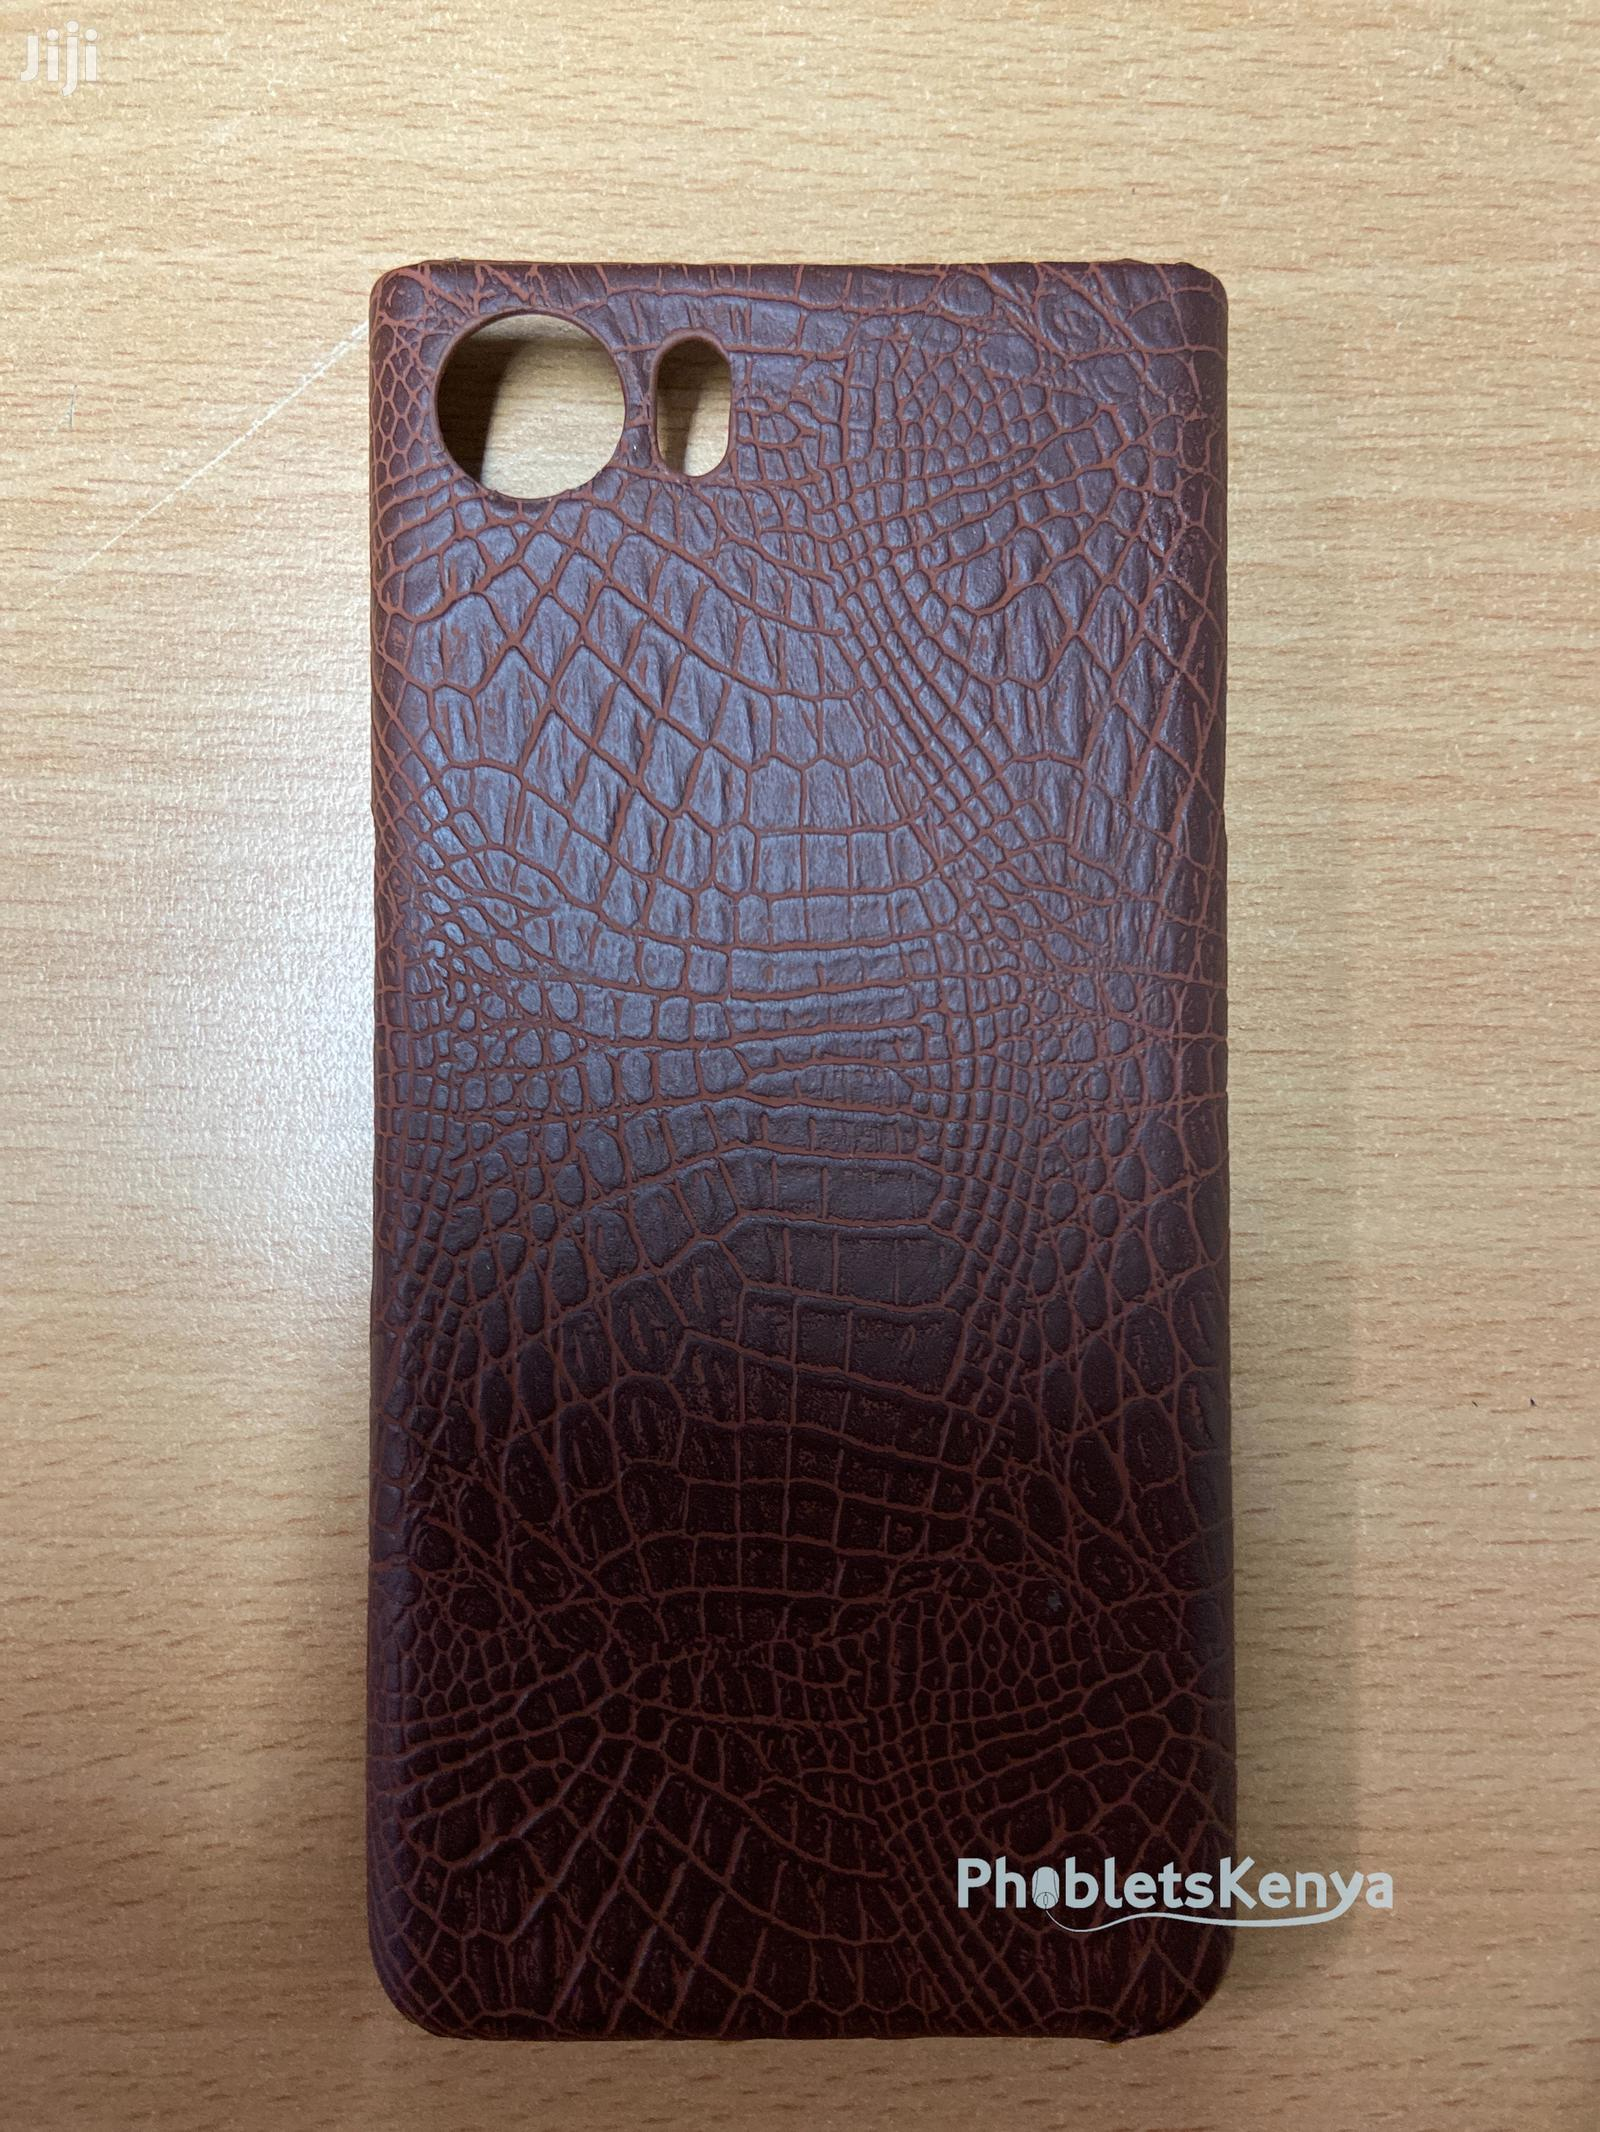 Blackberry Keyone Croco Back Cases | Accessories for Mobile Phones & Tablets for sale in Nairobi Central, Nairobi, Kenya